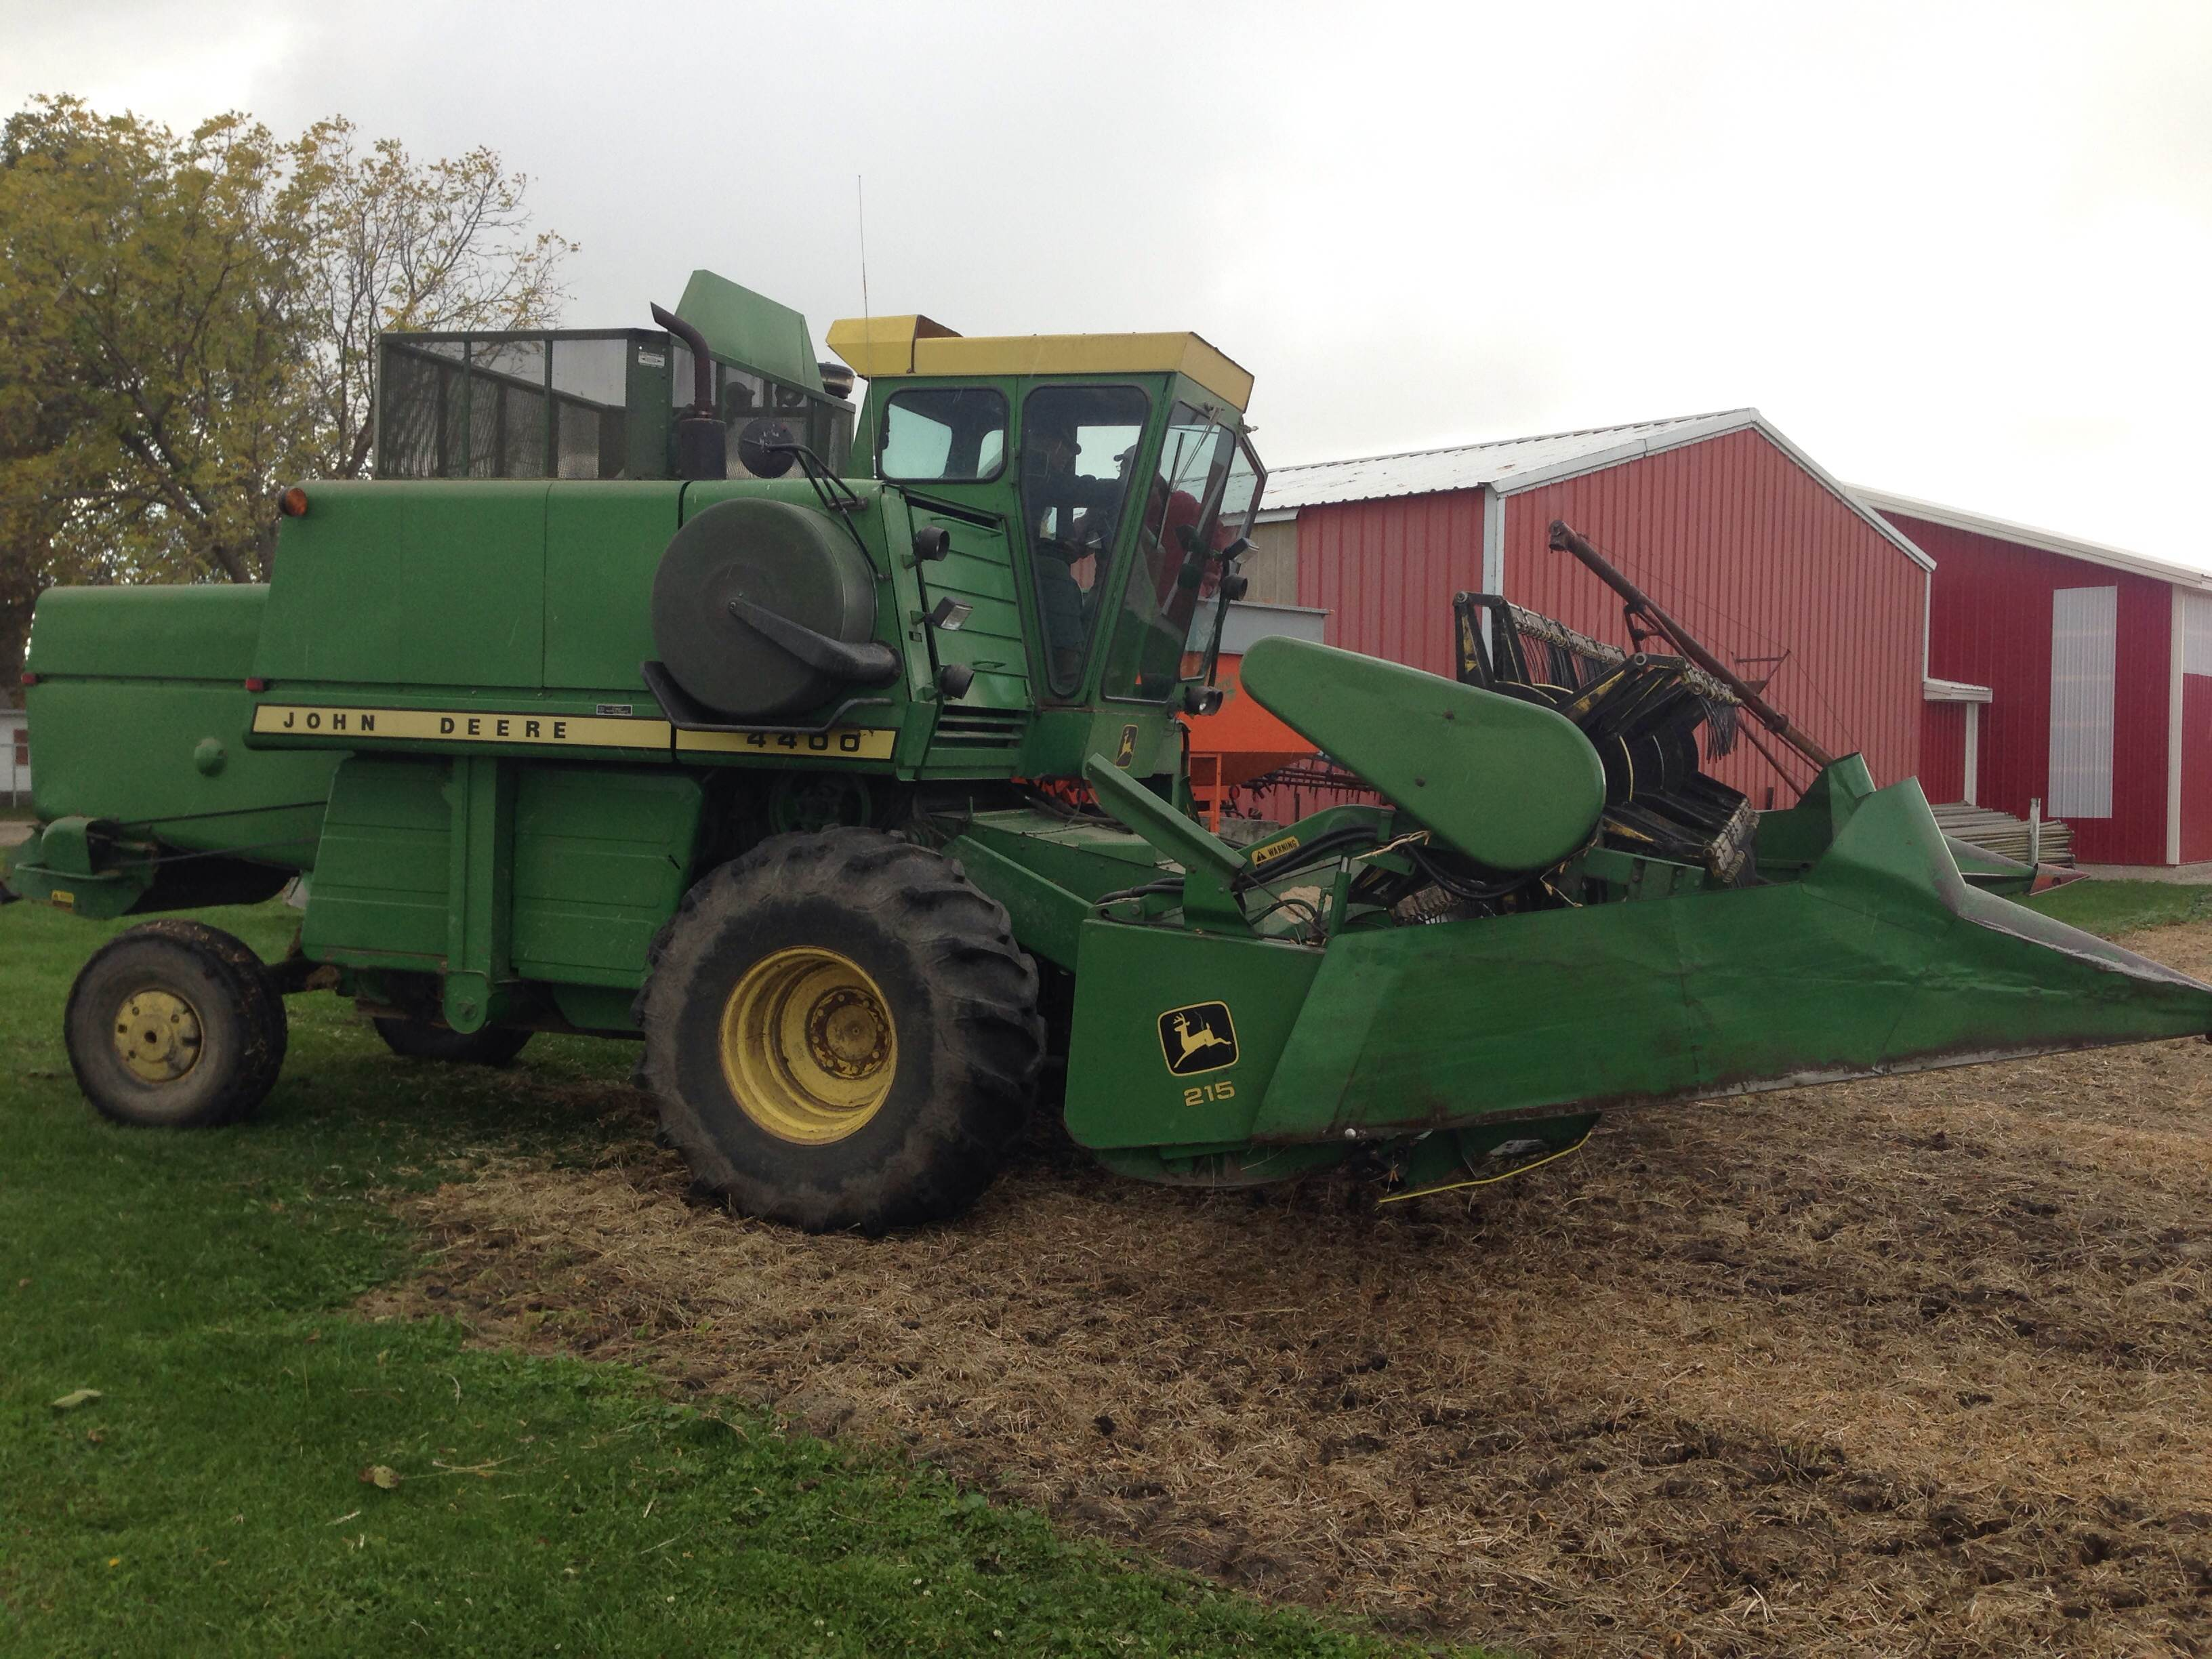 John Deere Combine >> A John Deere Combine That Is Anything But Green Ohio Ag